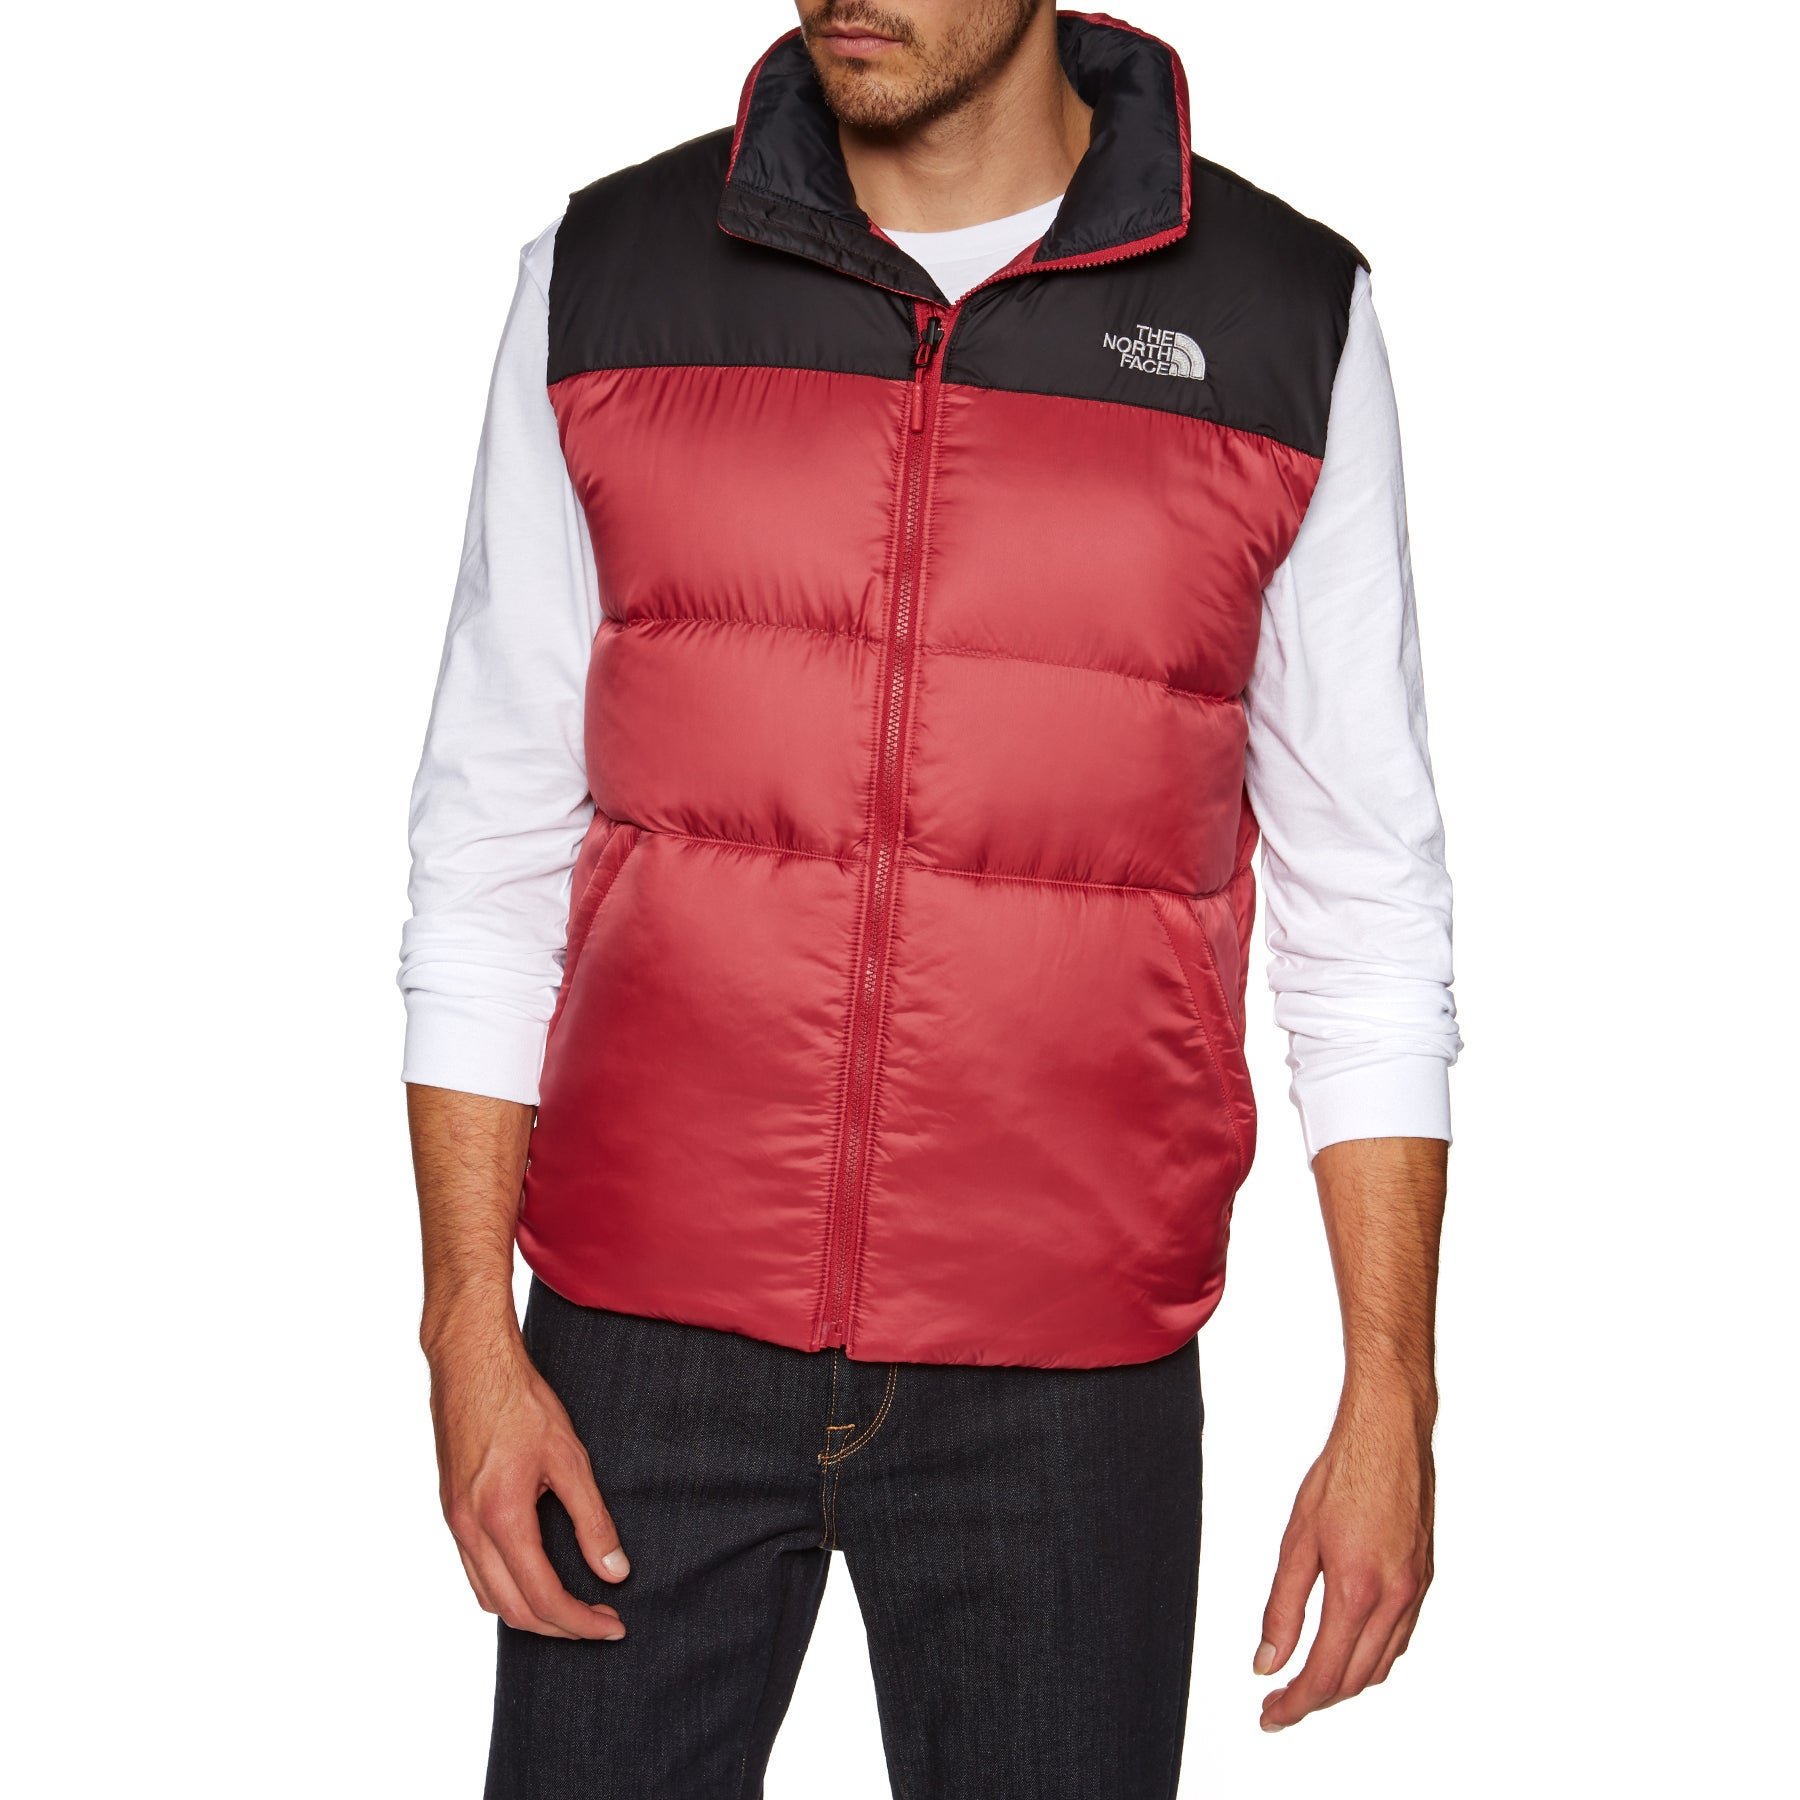 North Face Nuptse III Body Warmer - Rage Red TNF Black